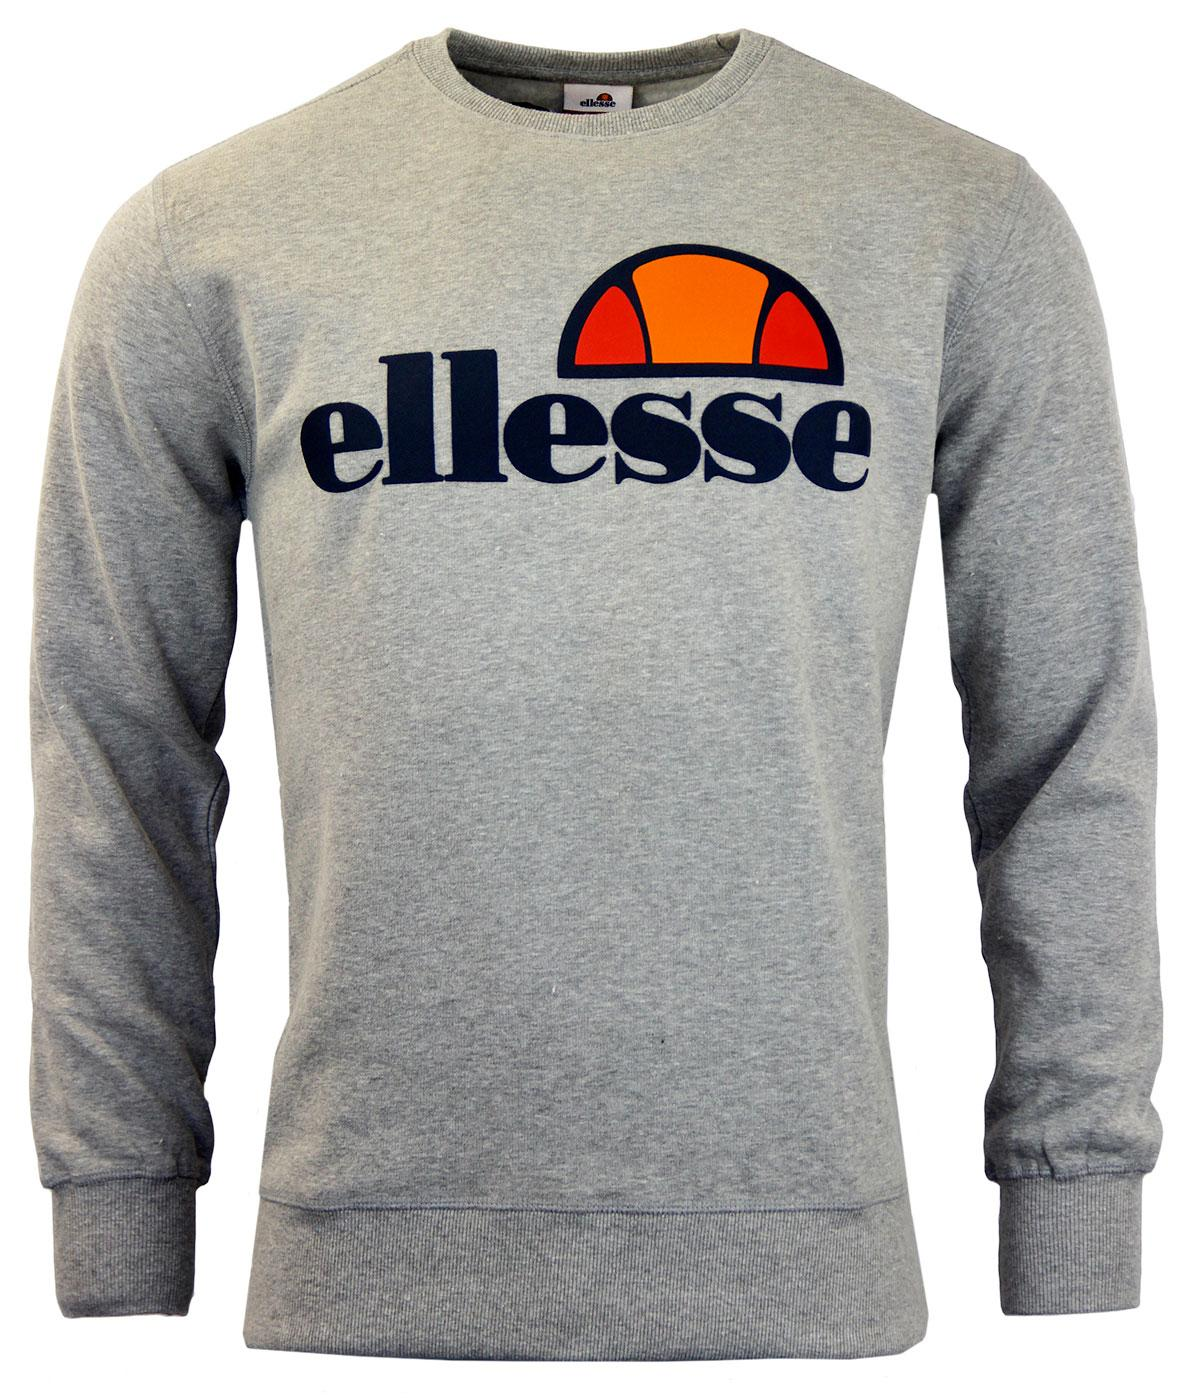 Succiso ELLESSE Retro 70s Crew Neck Sweater (GM)